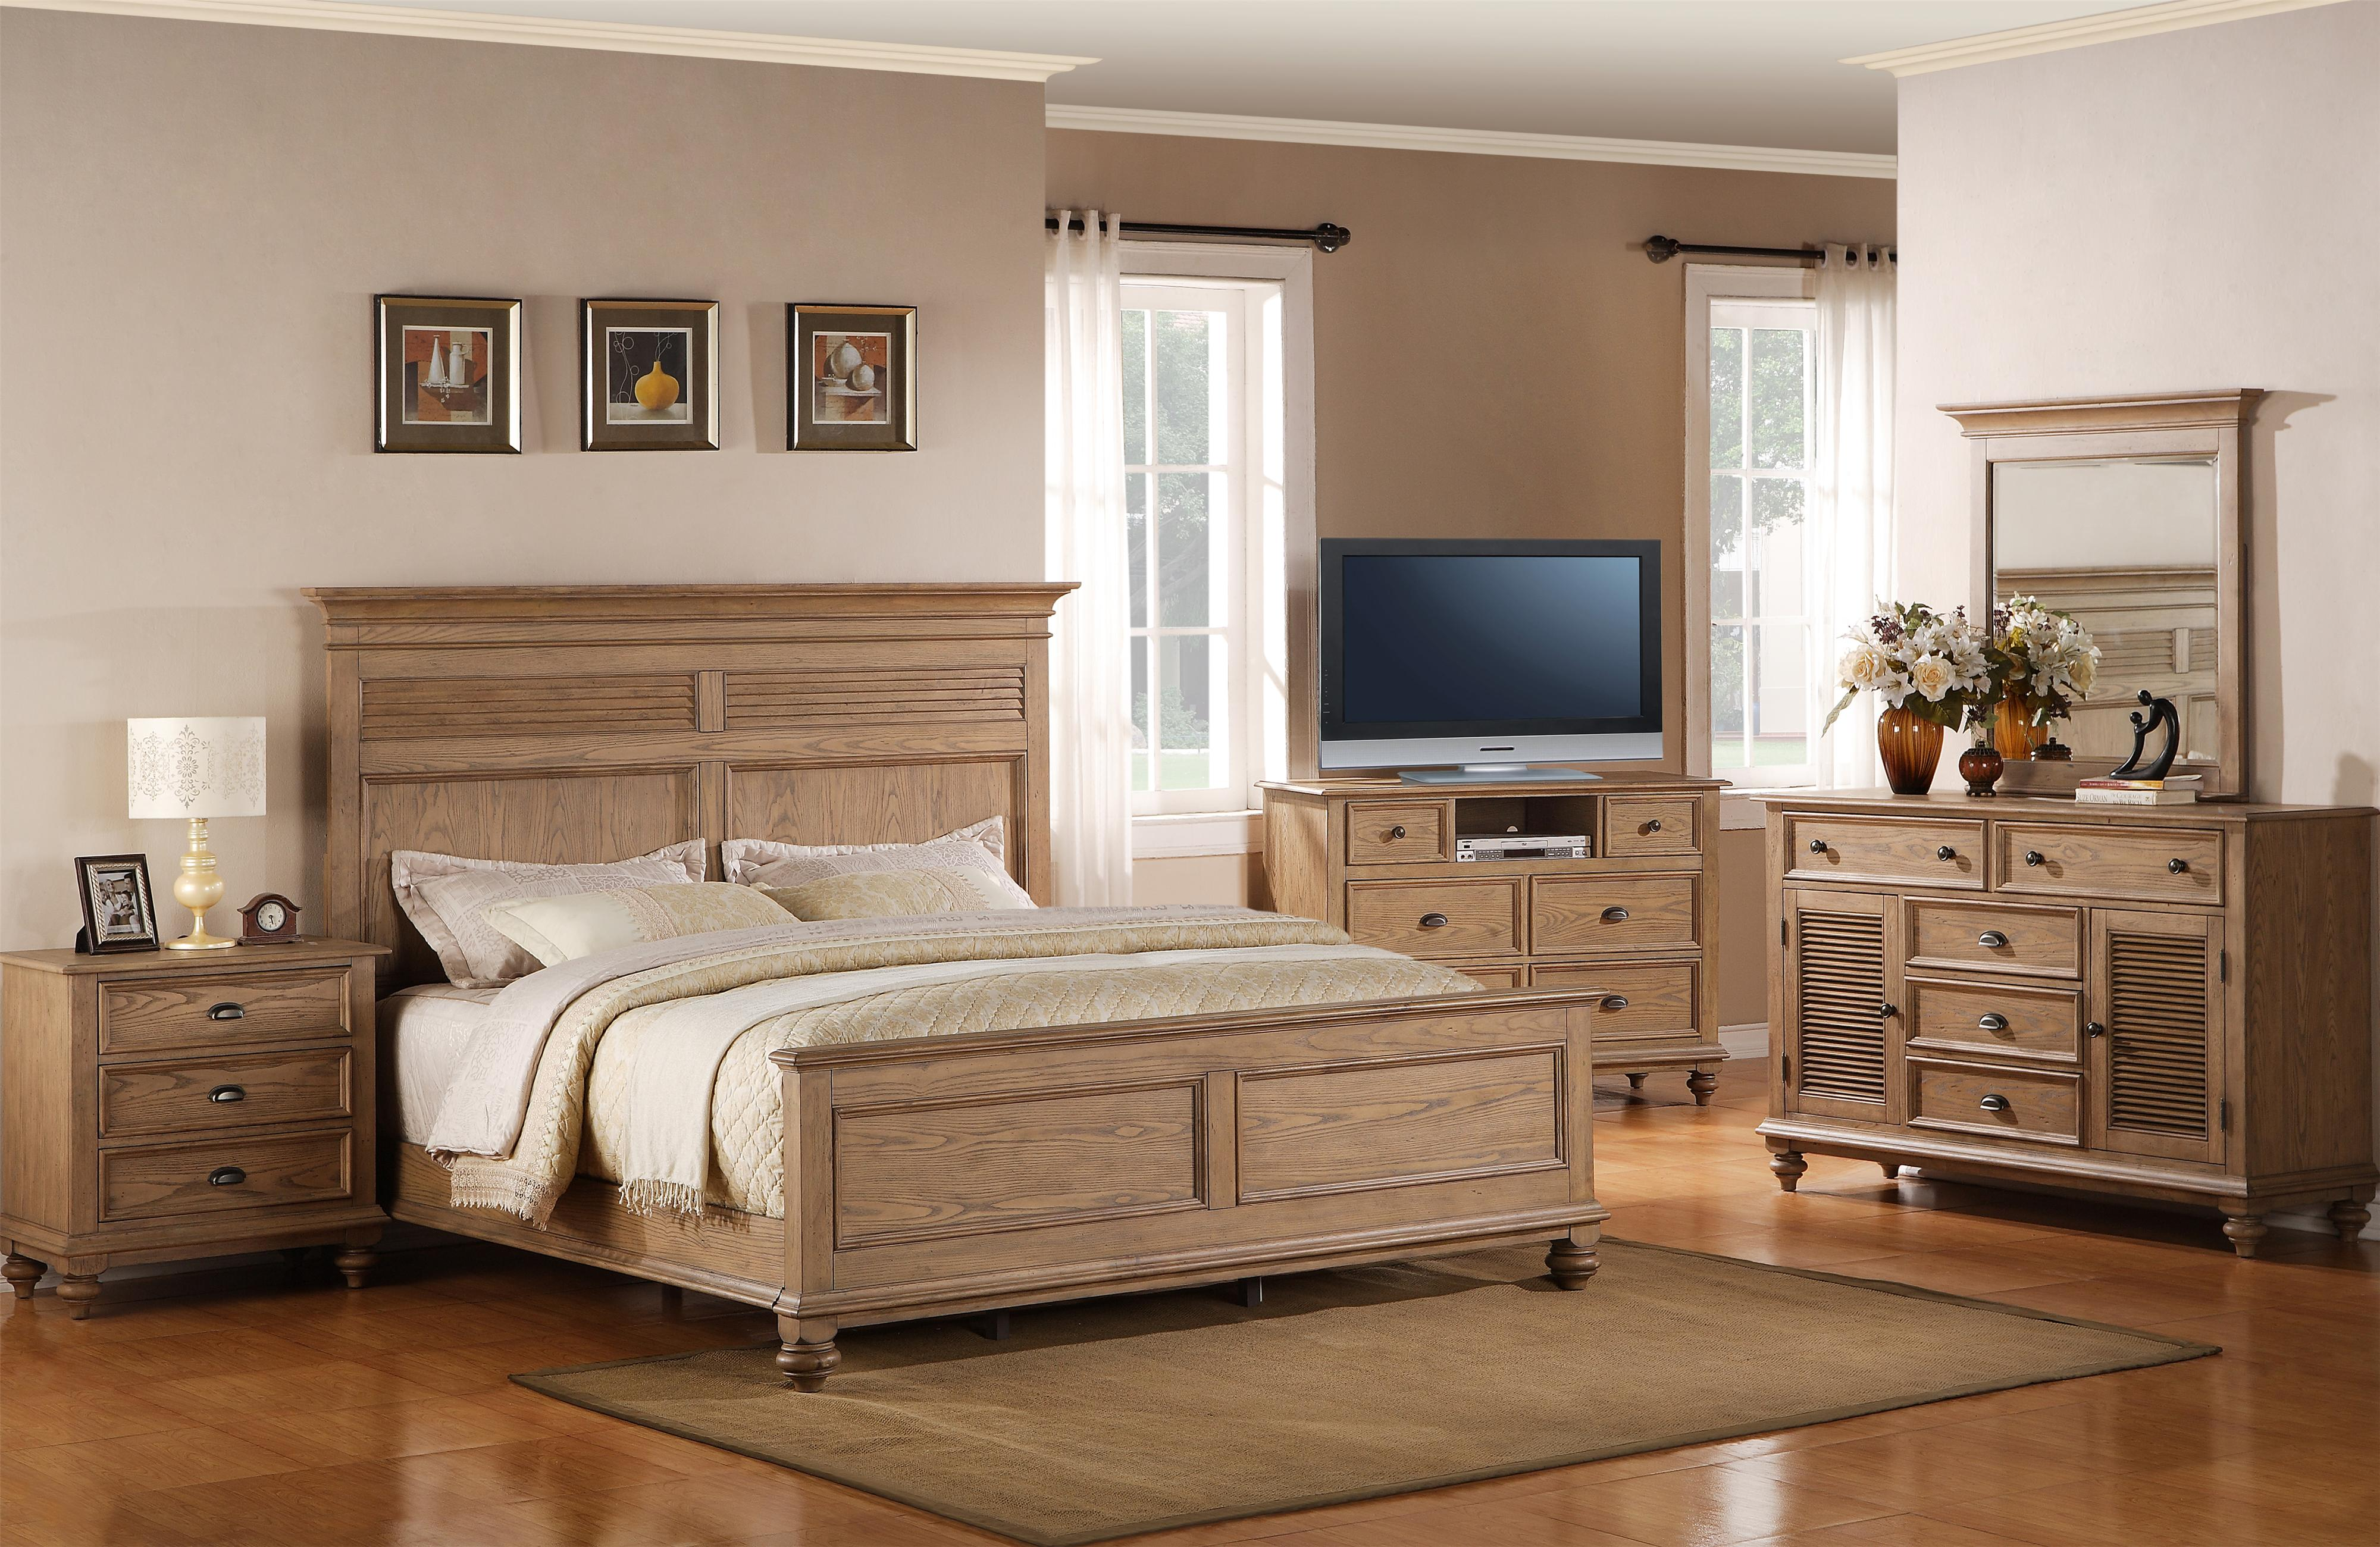 Riverside Furniture Coventry Full/Queen Bedroom Group - Item Number: 32400 F Q Bedroom Group 3